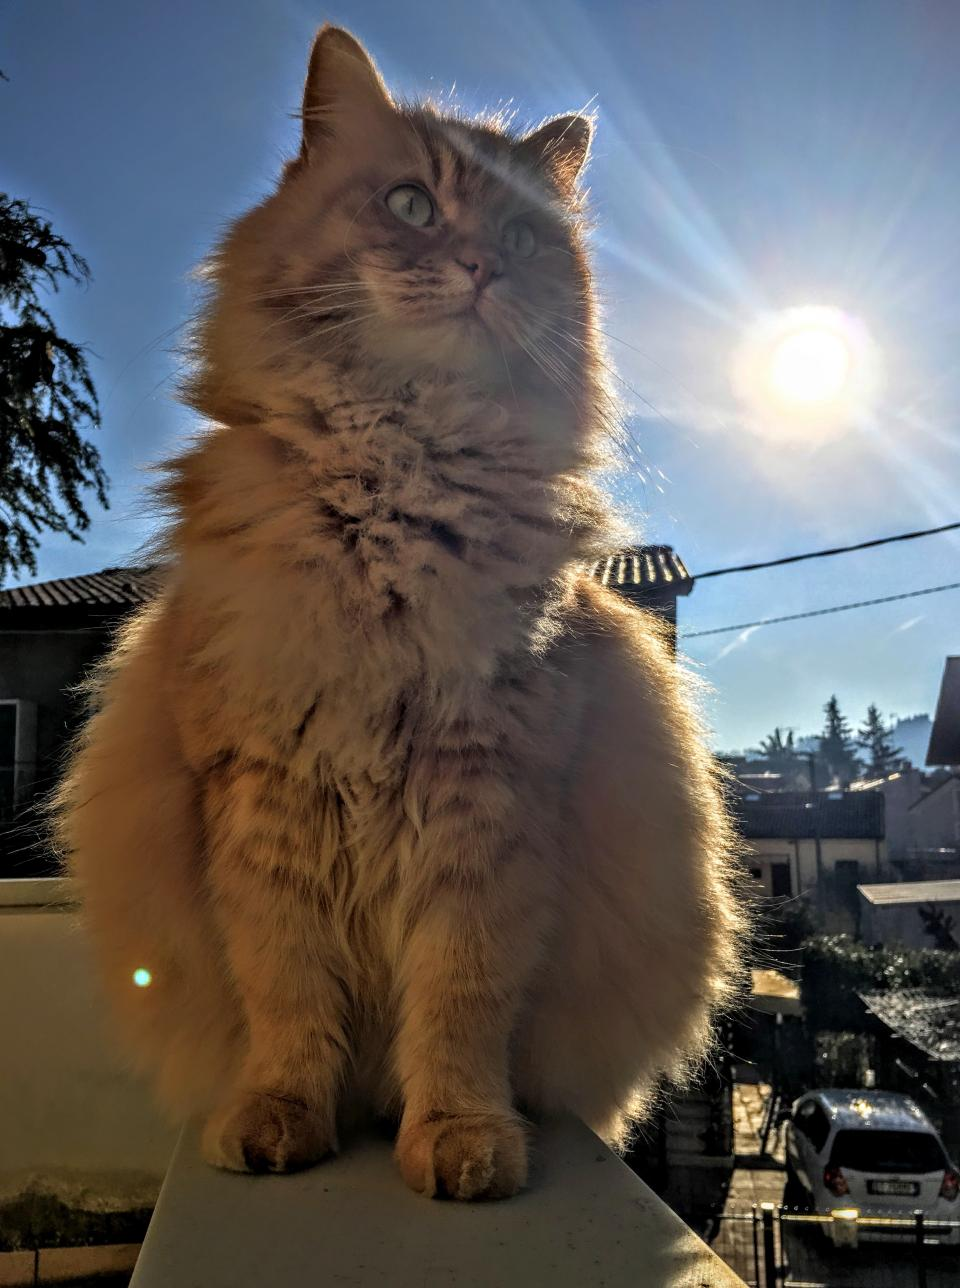 cat, animal, pet, outside, sunlight, sunshine, sunrise, sunny, day, blue, sky, cloud, rooftop, houses, car, vehicle, parking